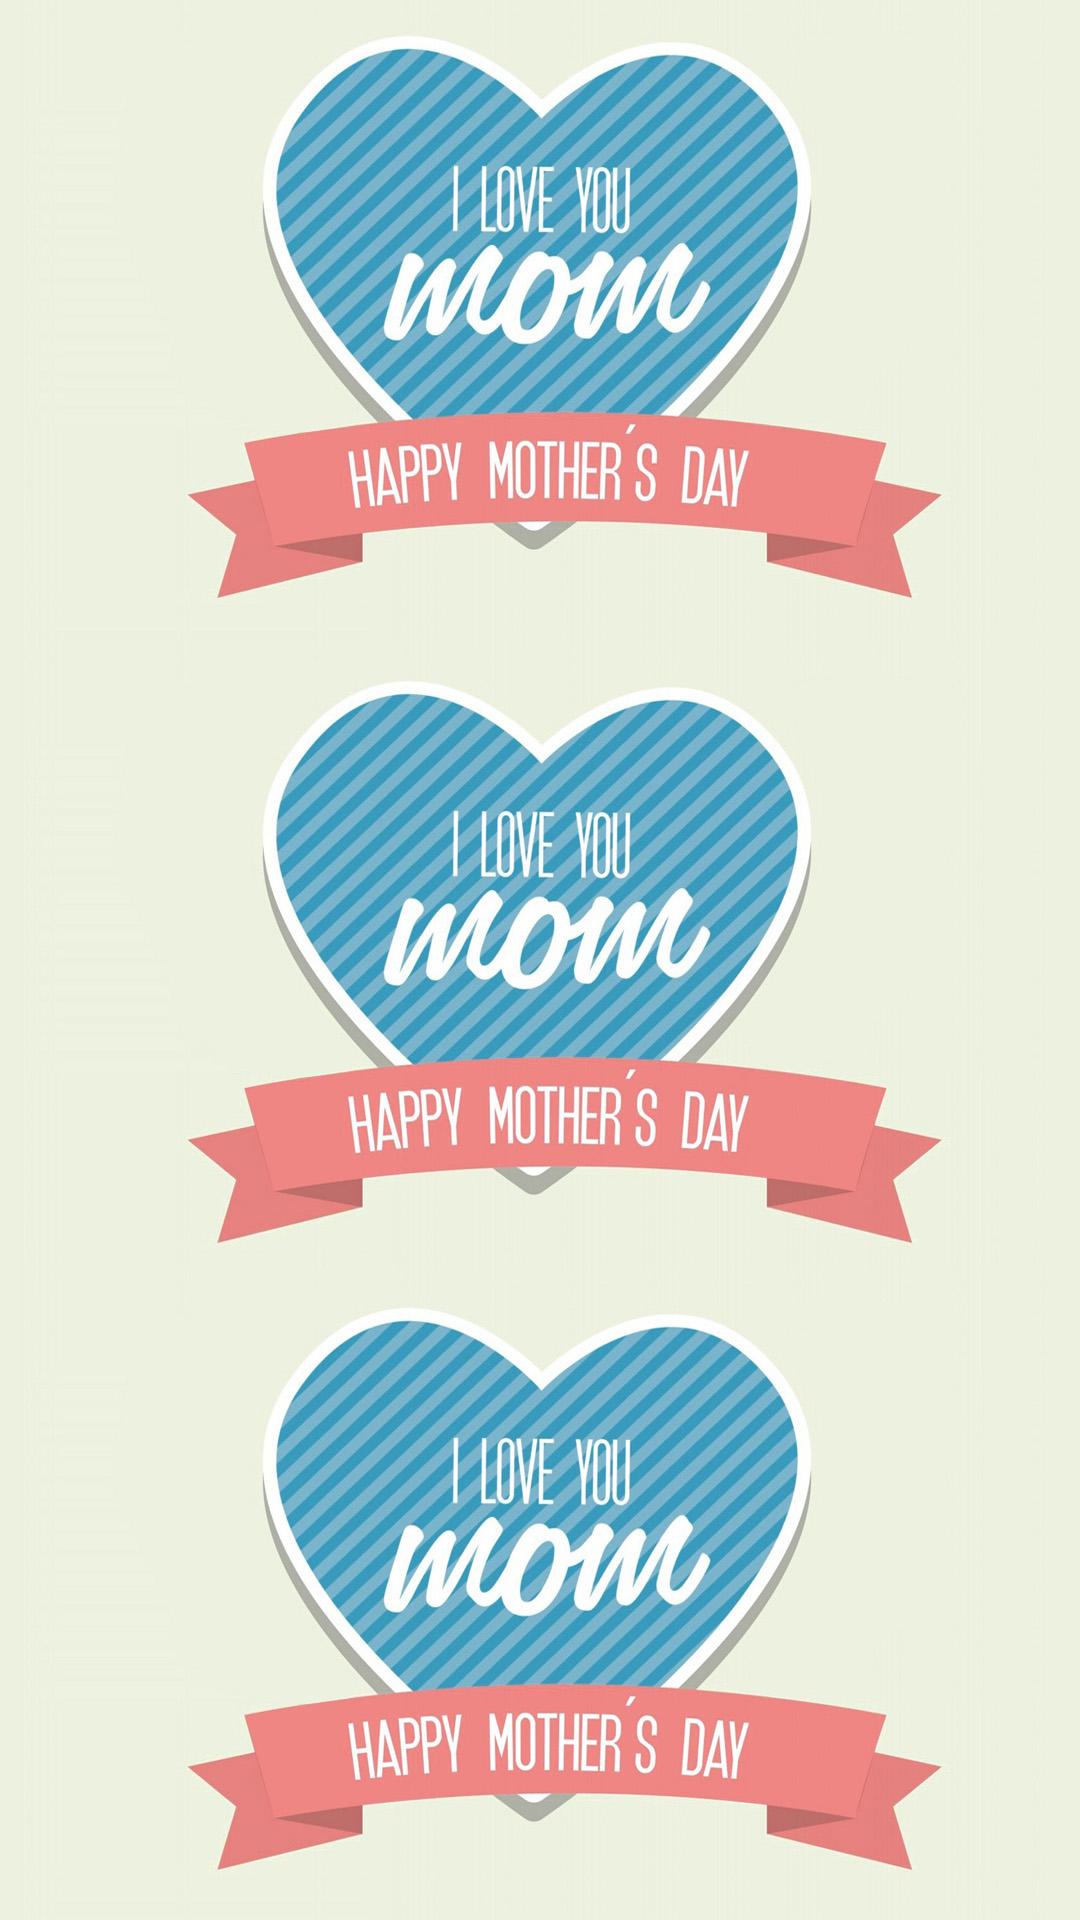 I Love U Mom Wallpaper   123mobileWallpaperscom 1080x1920